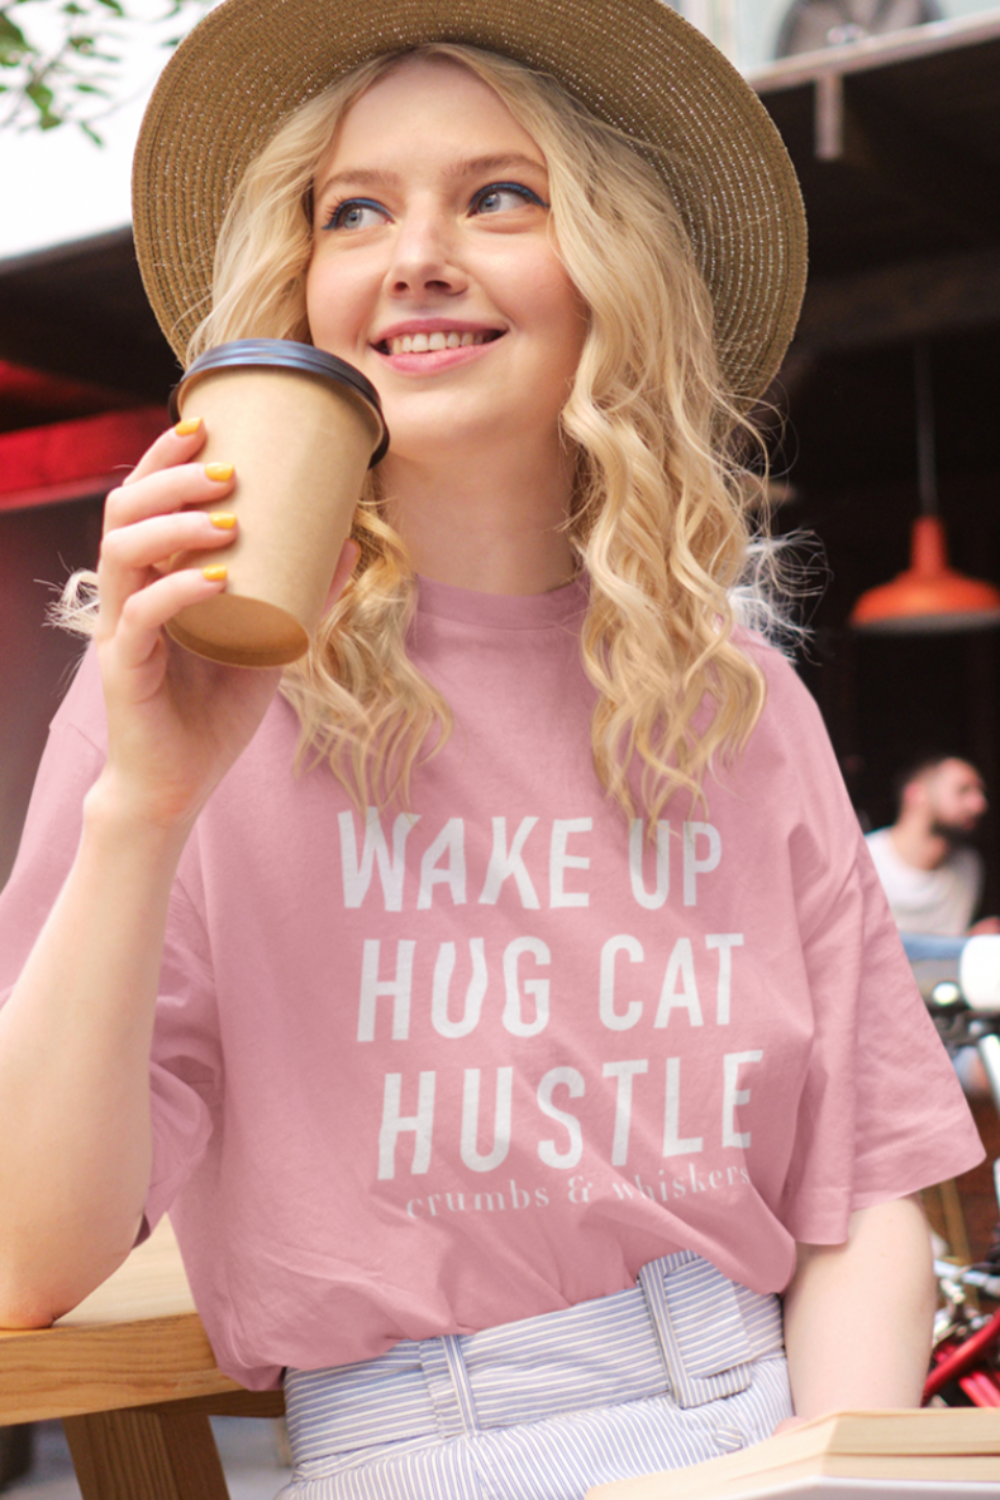 Wake up, Hug Cat, Hustle | Tee